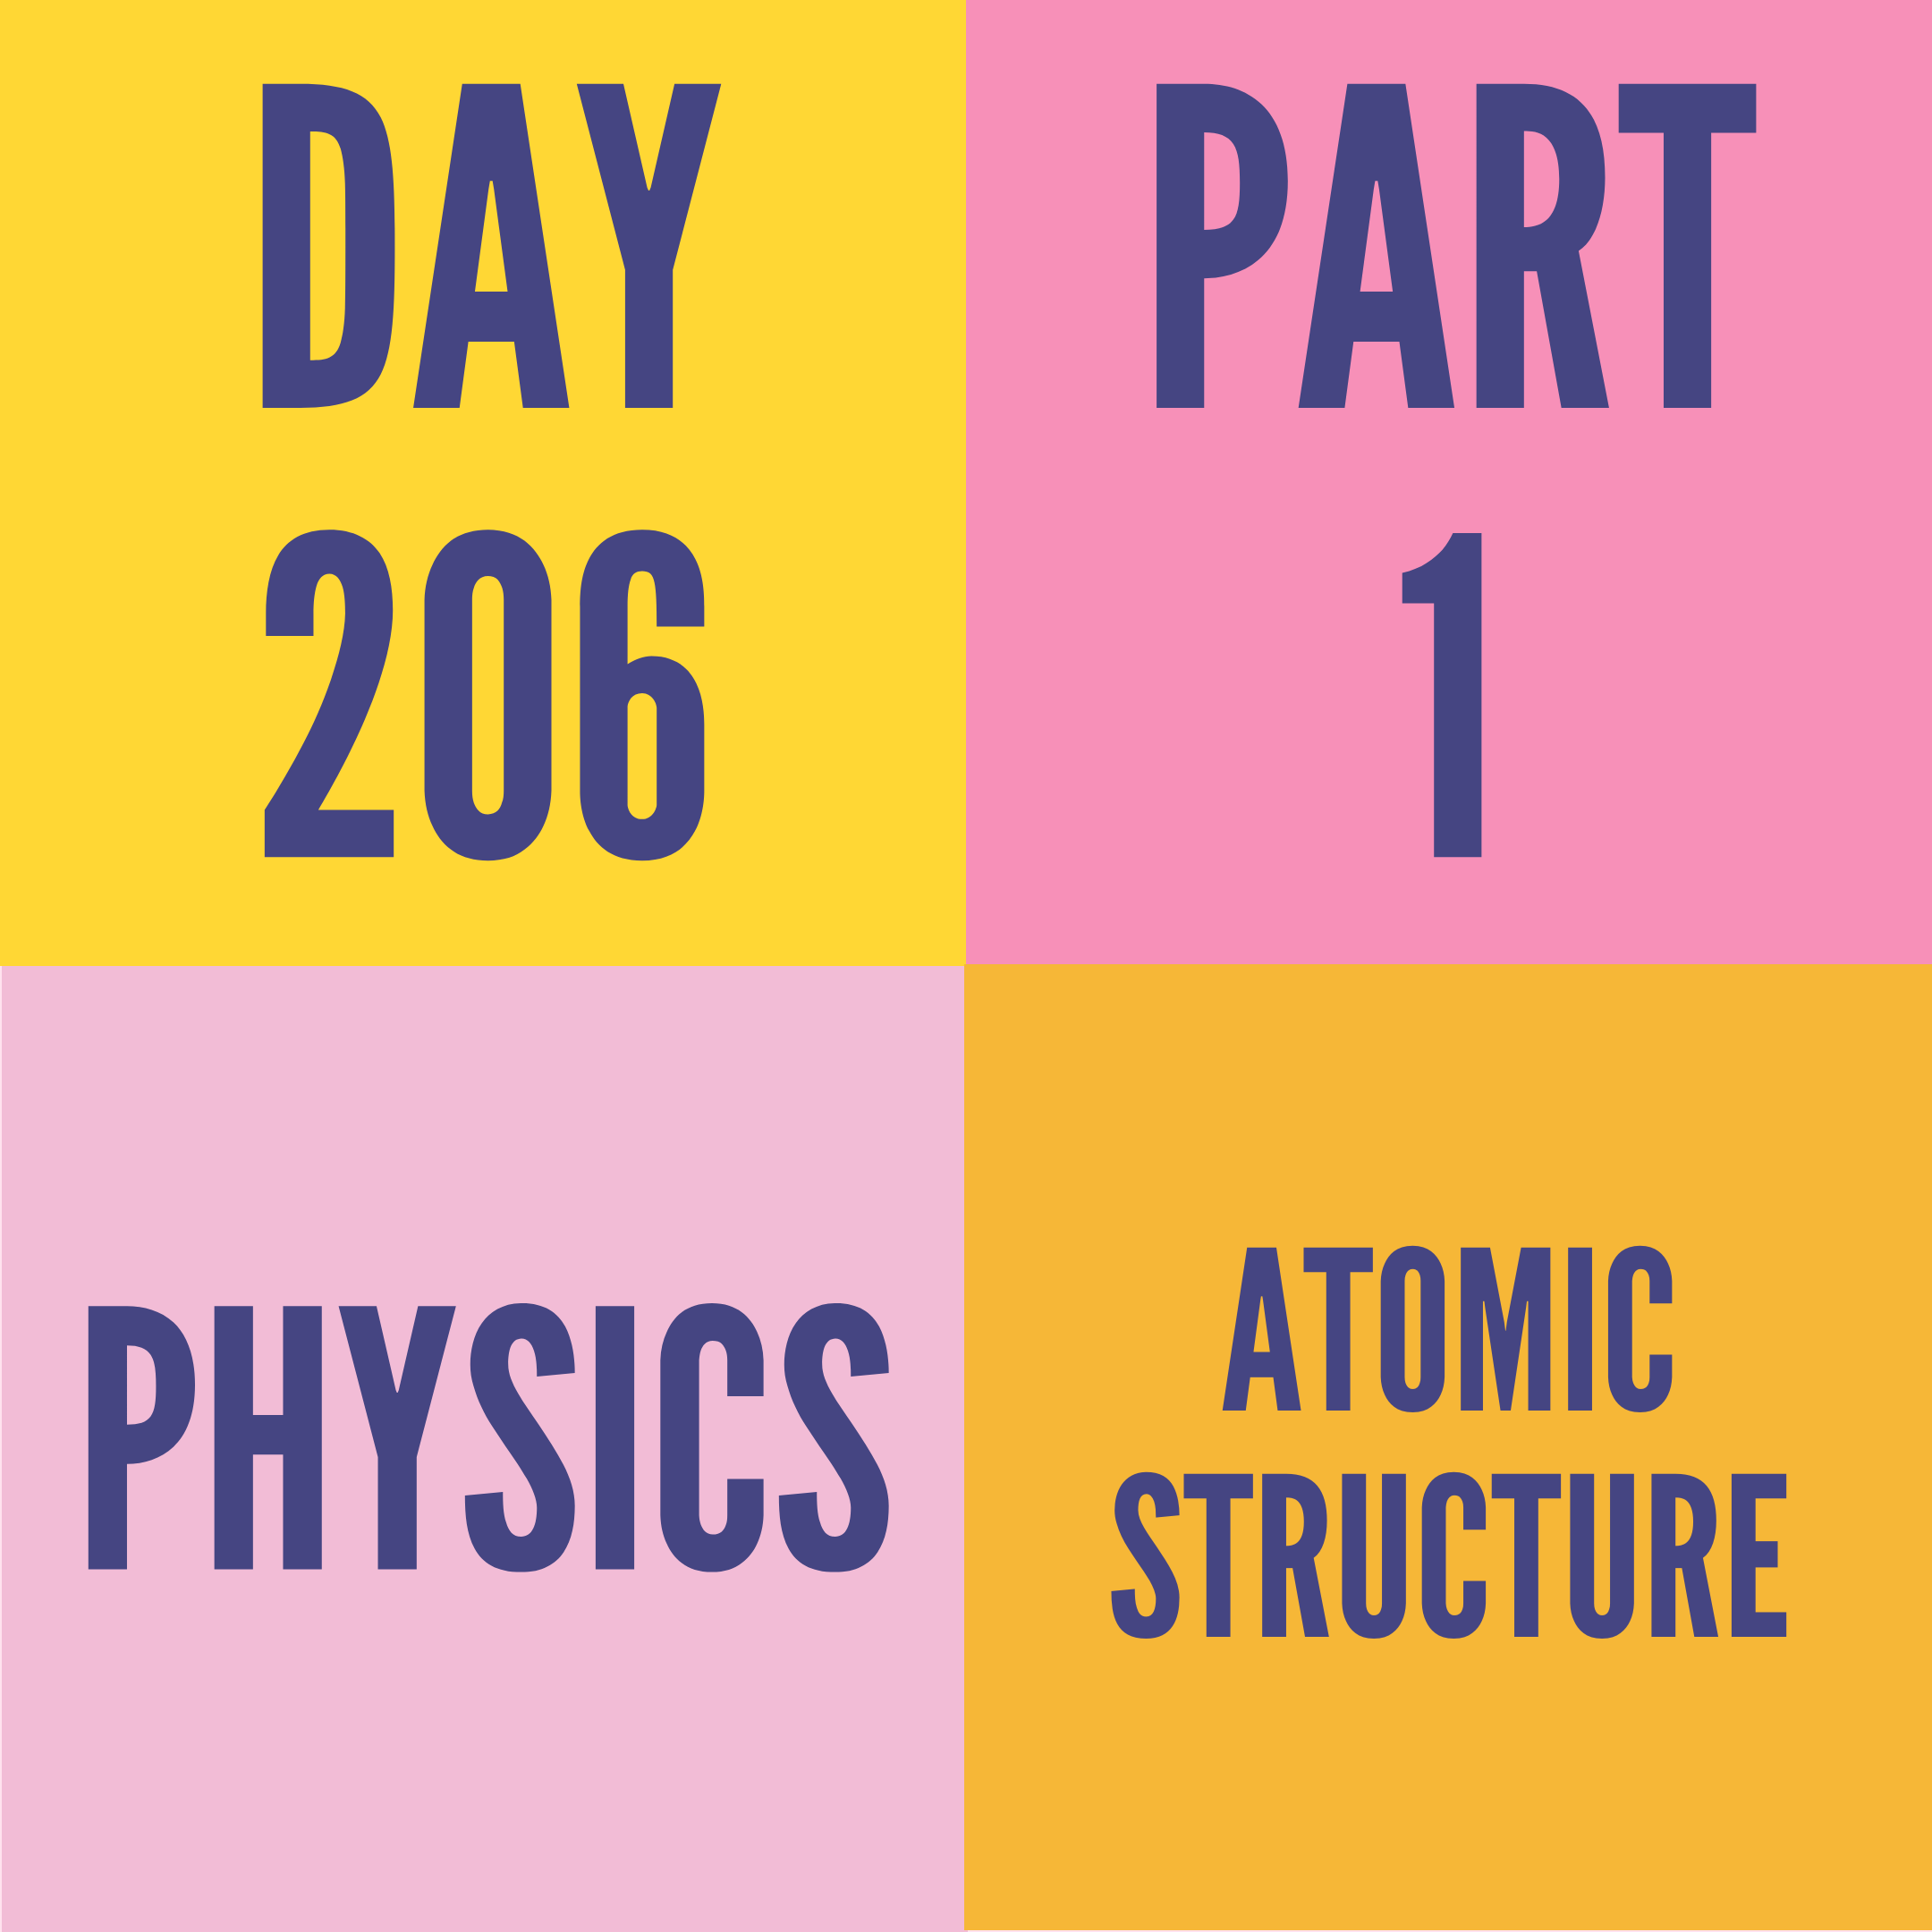 DAY-206 PART-1 ATOMIC STRUCTURE